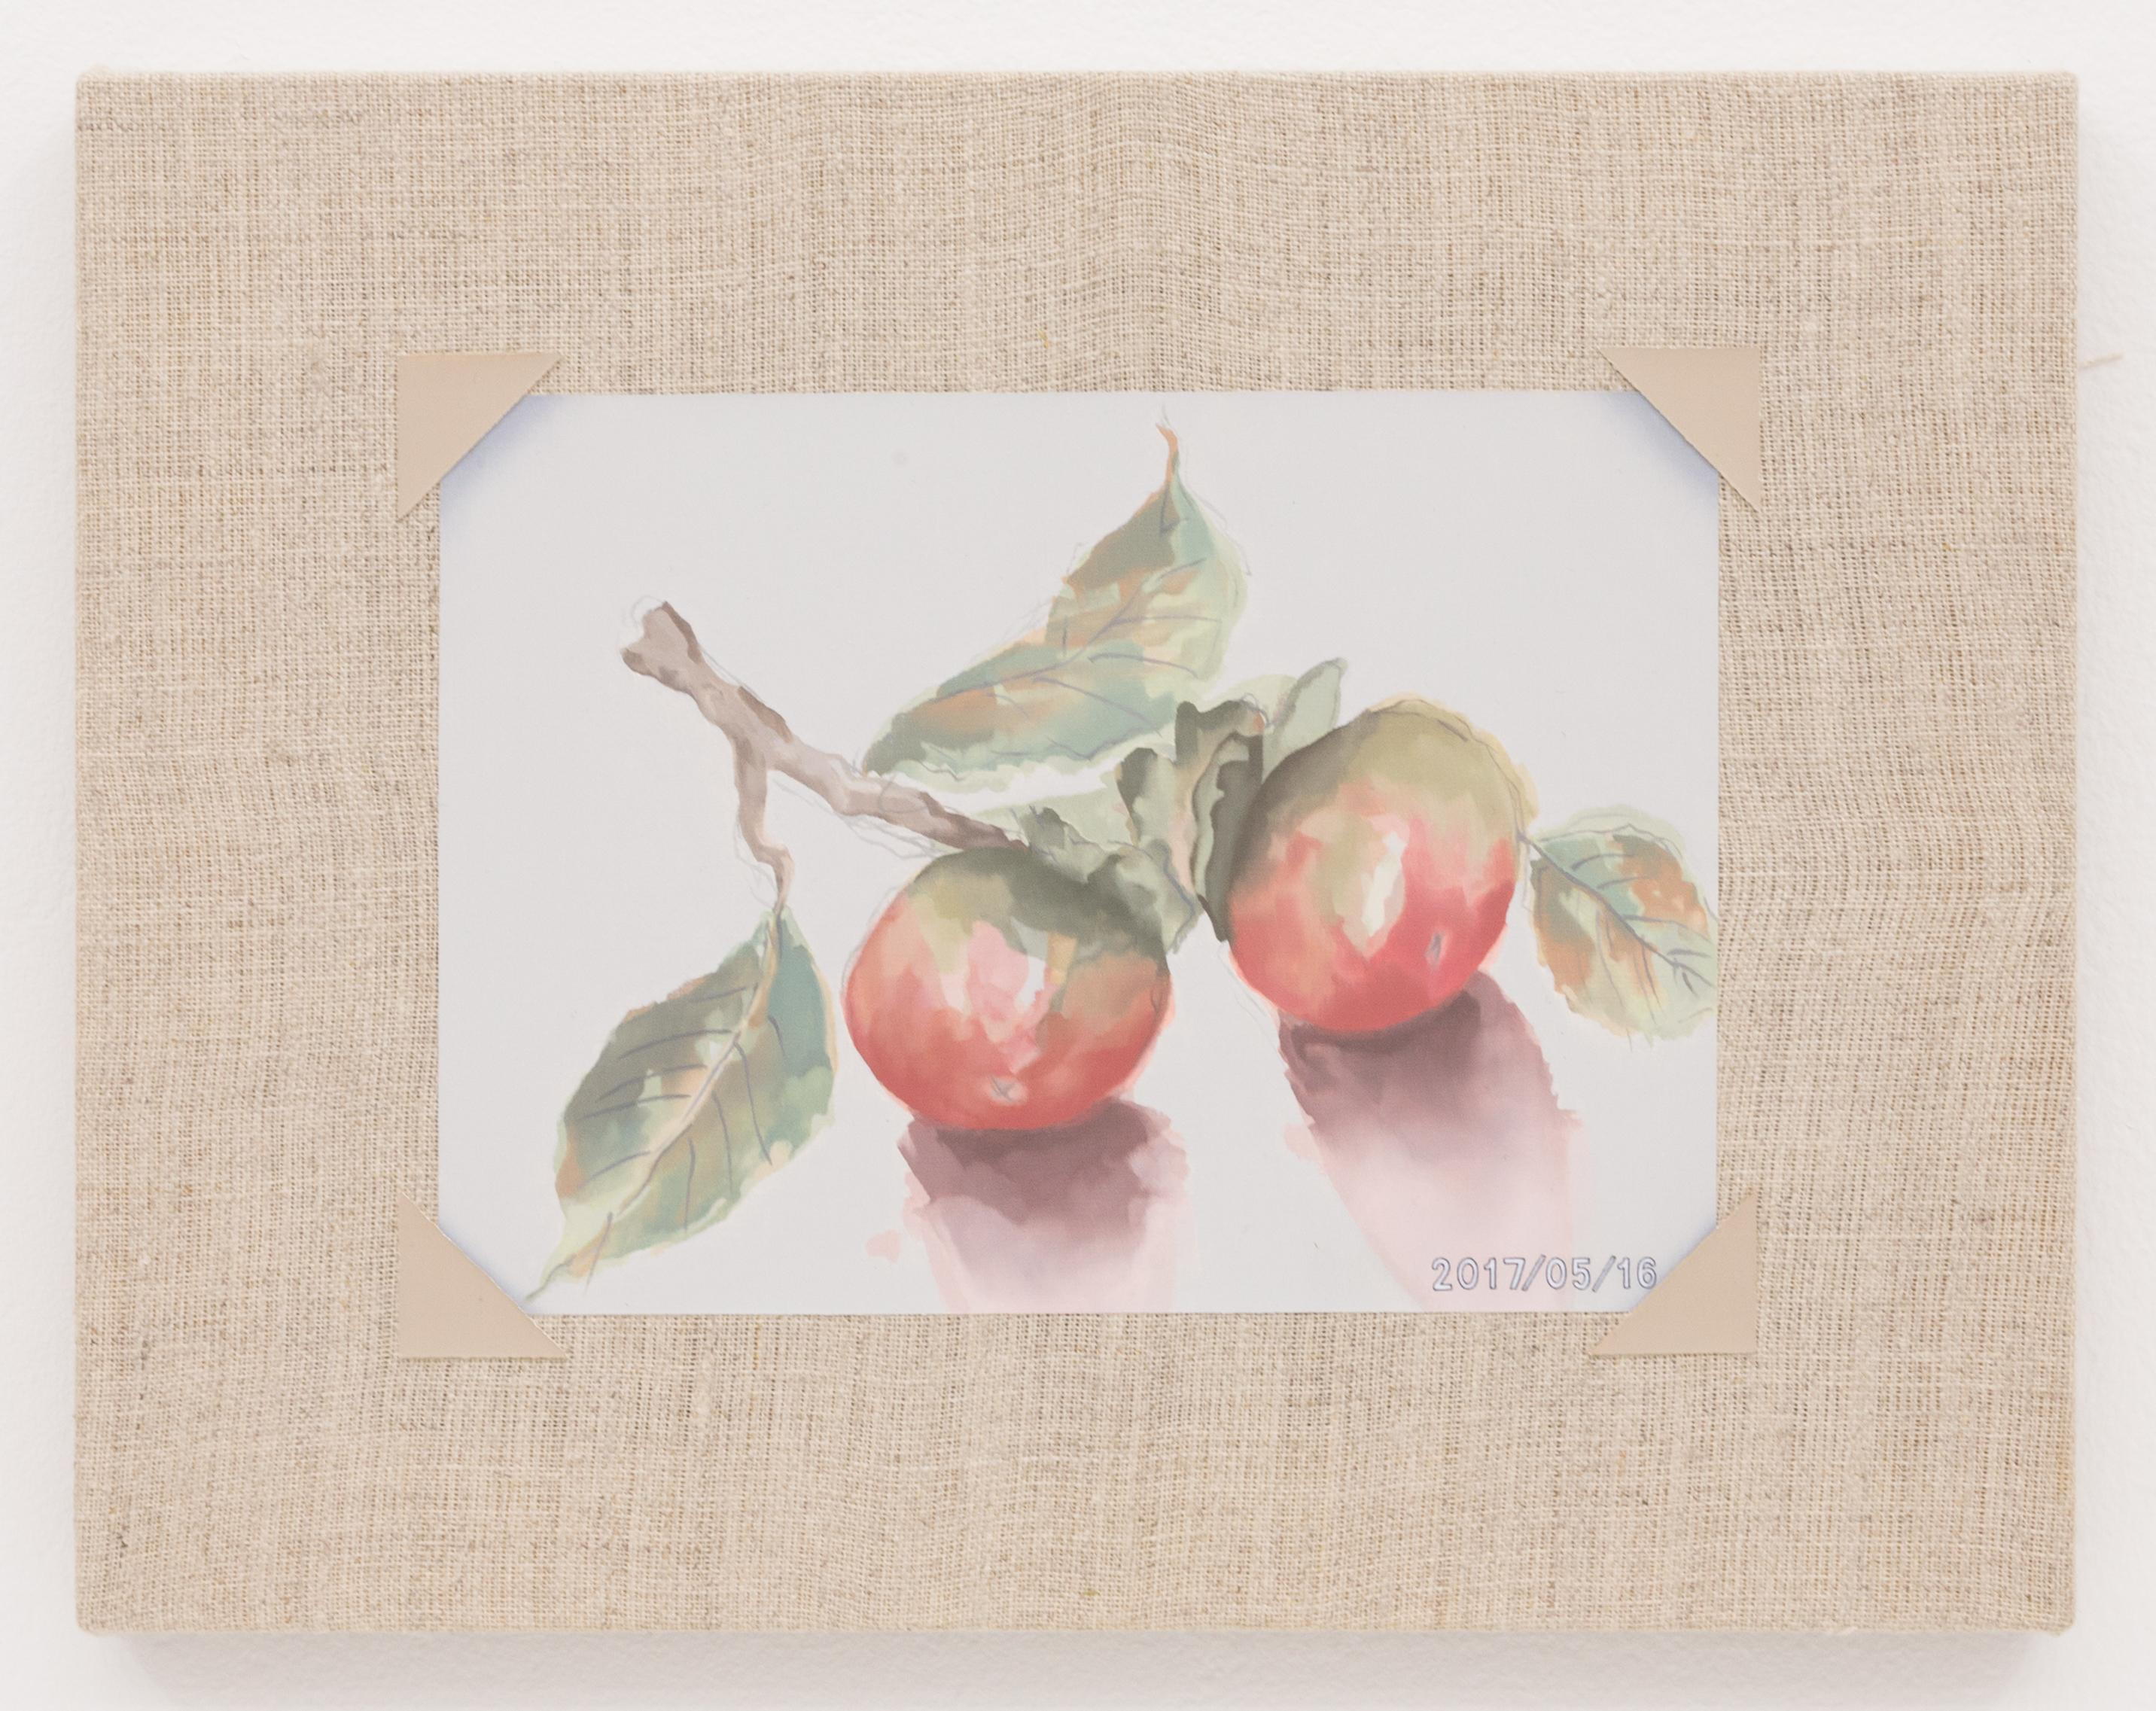 A muted watercolor painting of two red and green fruits with large leaves.